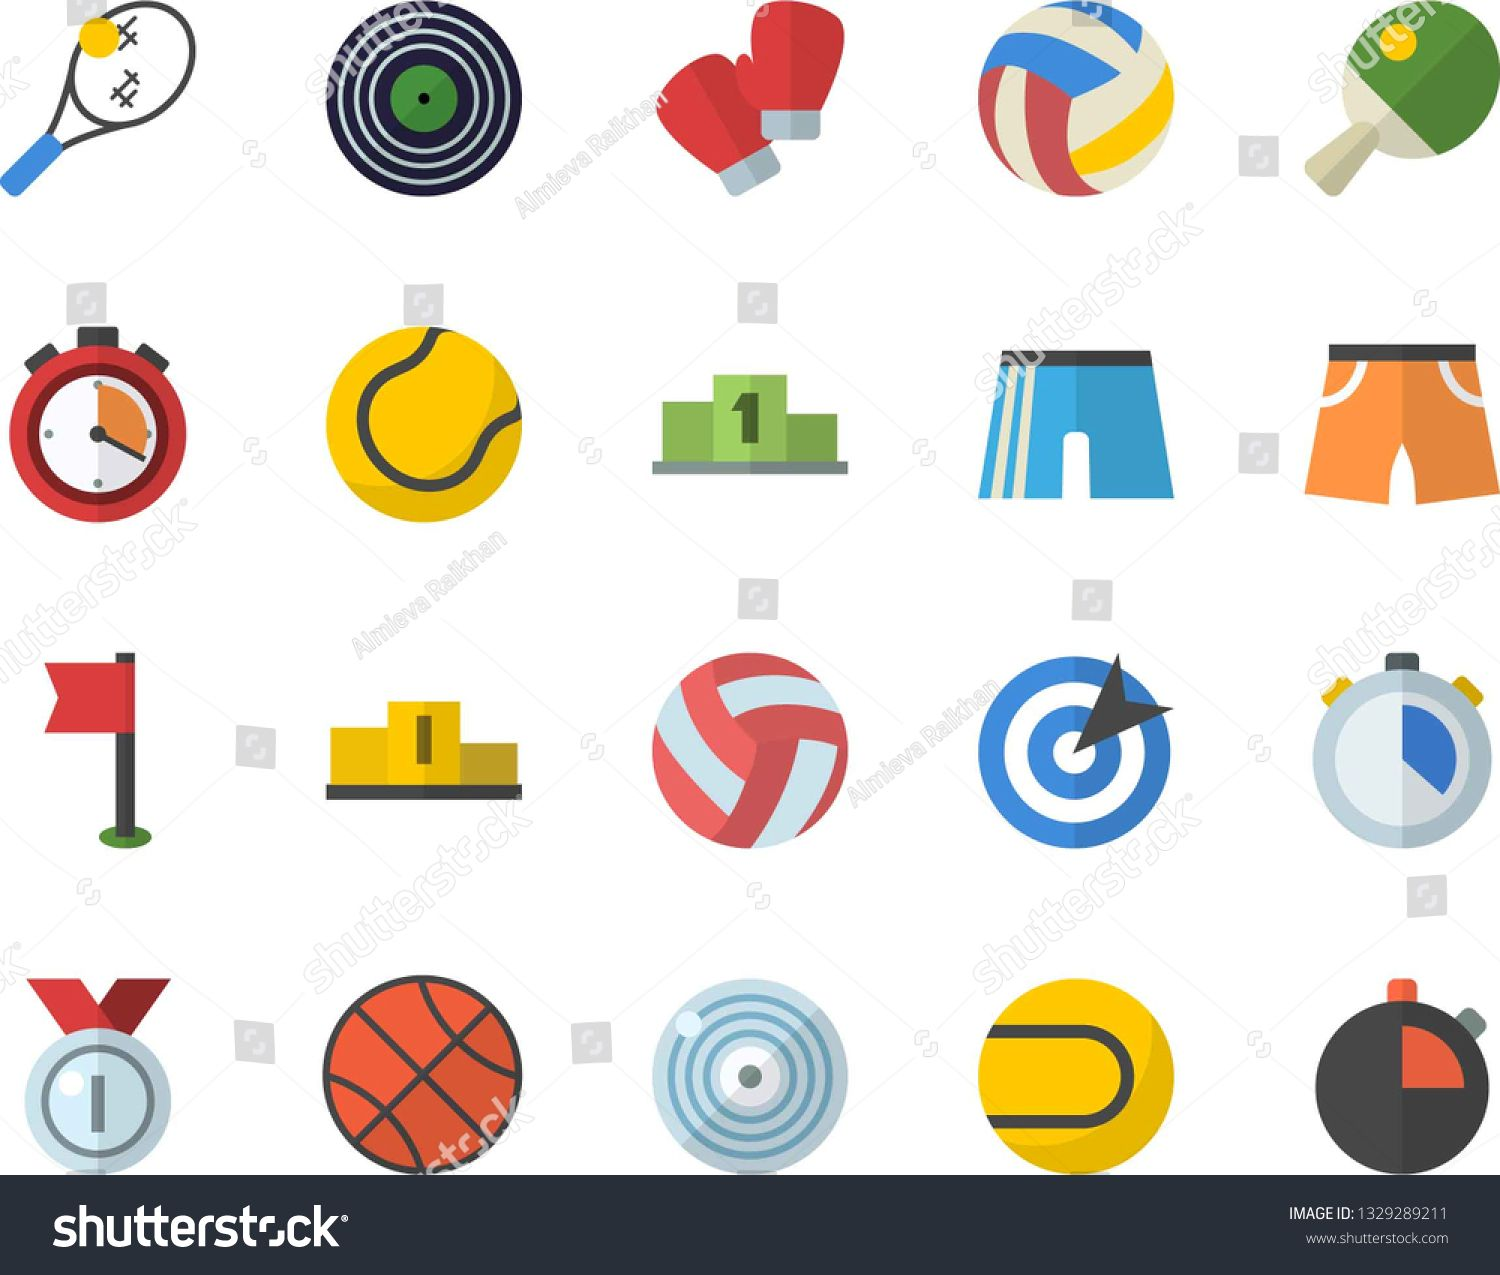 Color Flat Icon Set Target Flat Vector Medal Pedestal Basketball Volleyball Stopwatch Athletic Shorts Sports Fl Sports Flags Flat Icons Set Target Flats